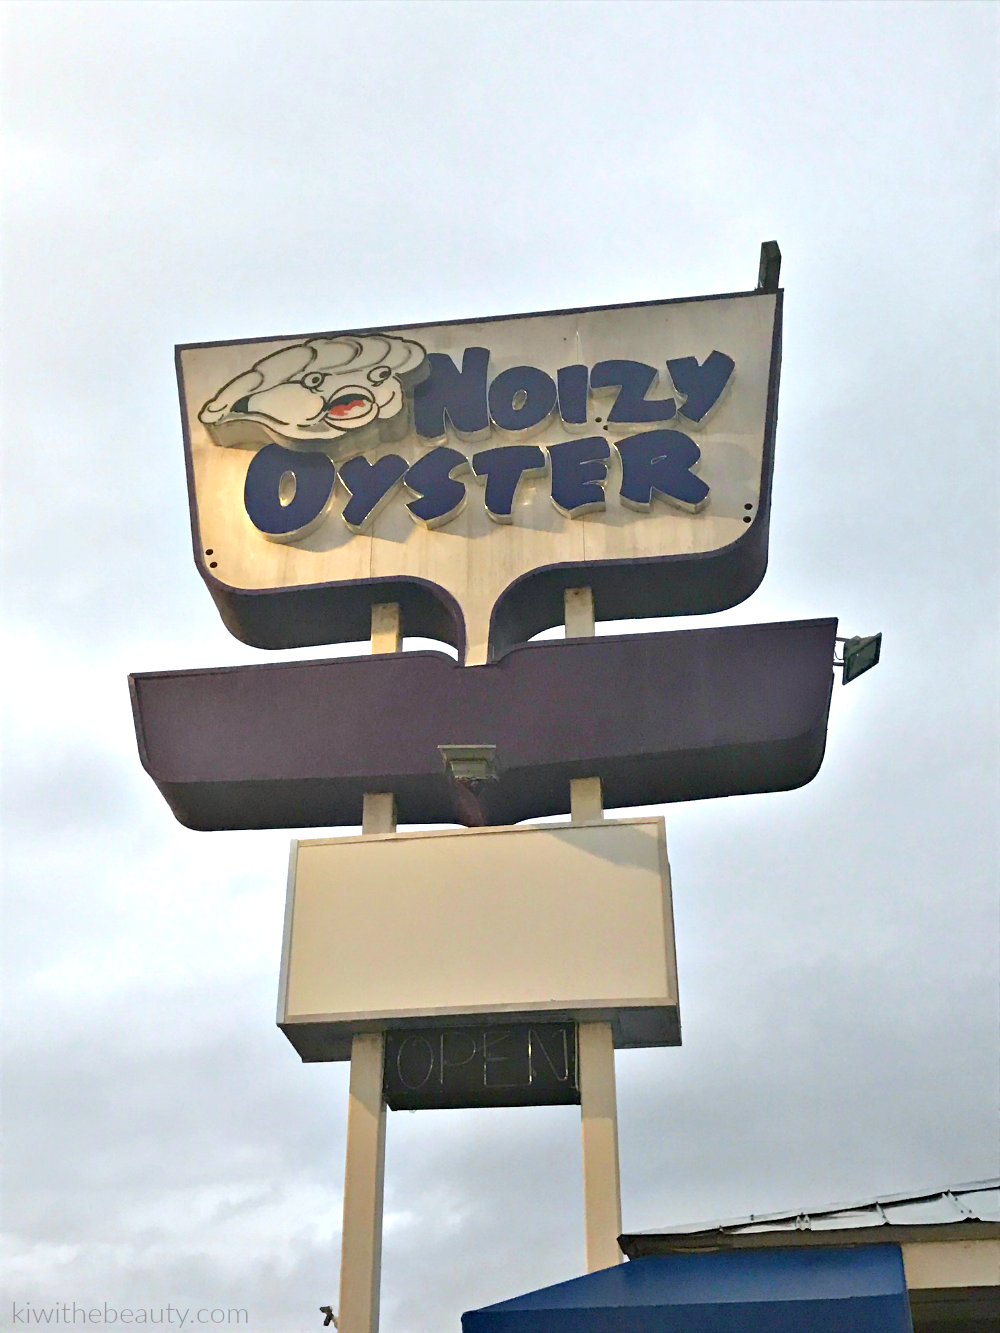 the-noizy-oyster-review-1